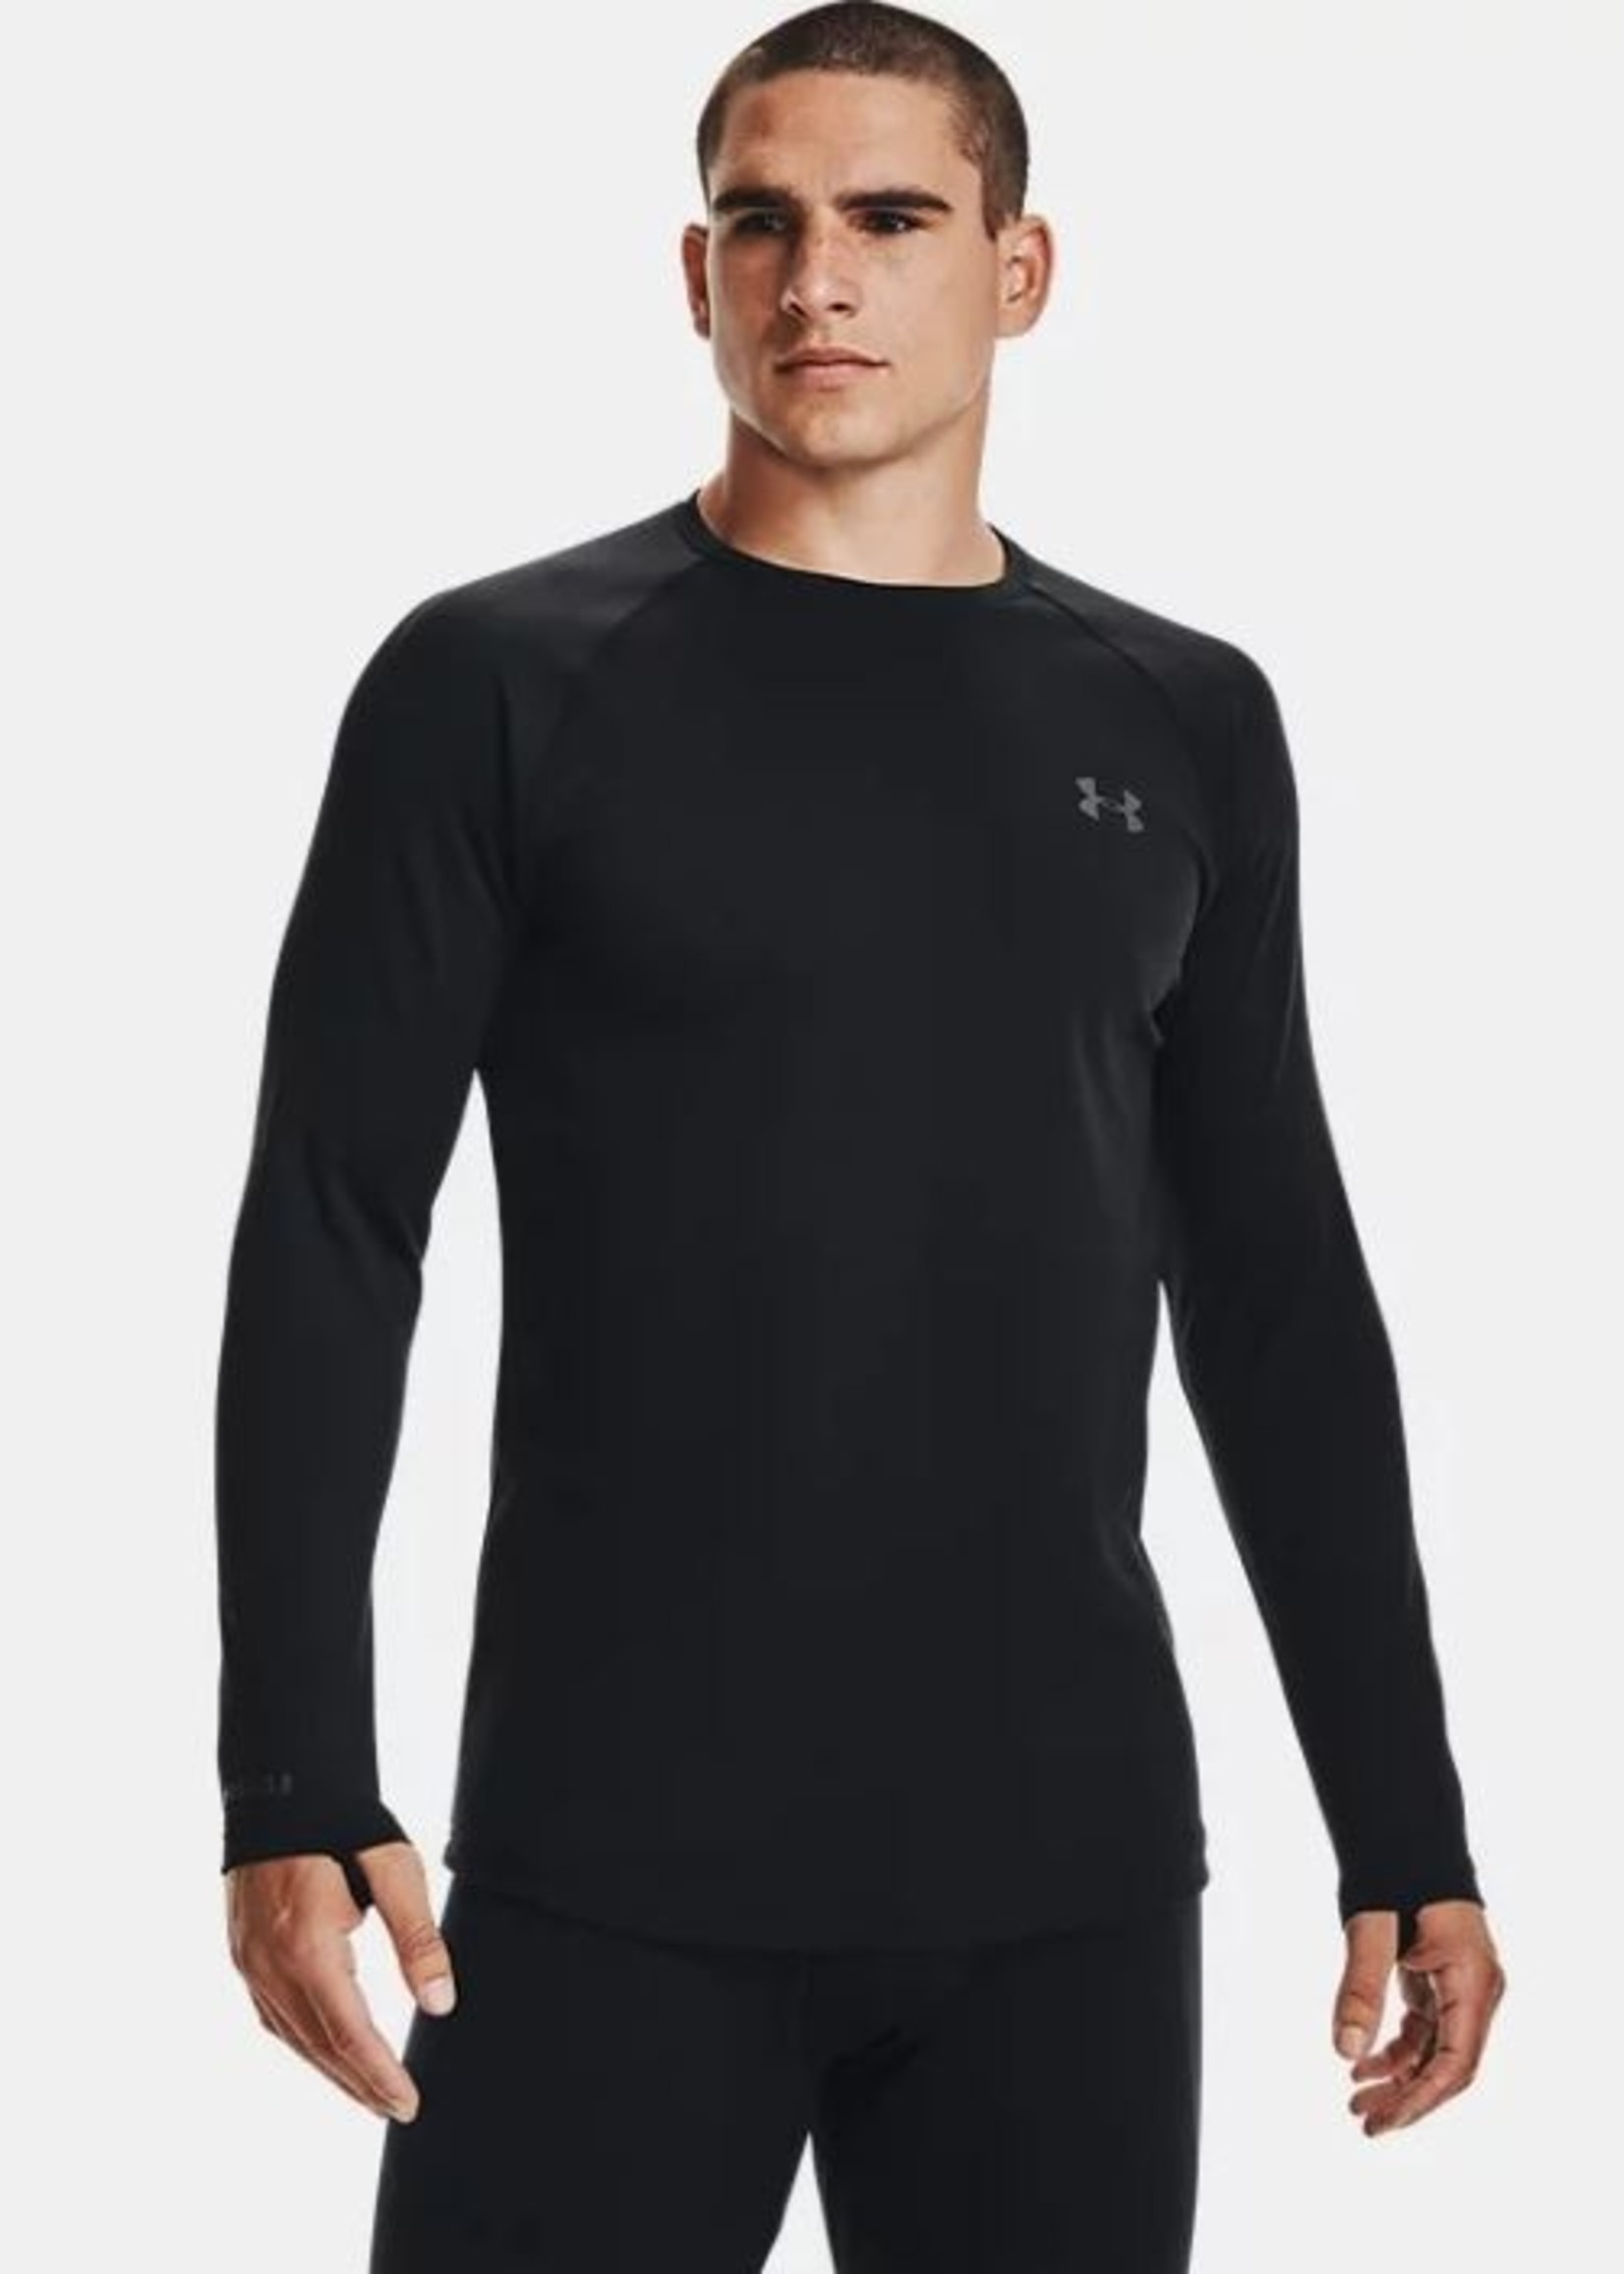 Under Armour PACKAGED BASE 3.0 CREW 1343243